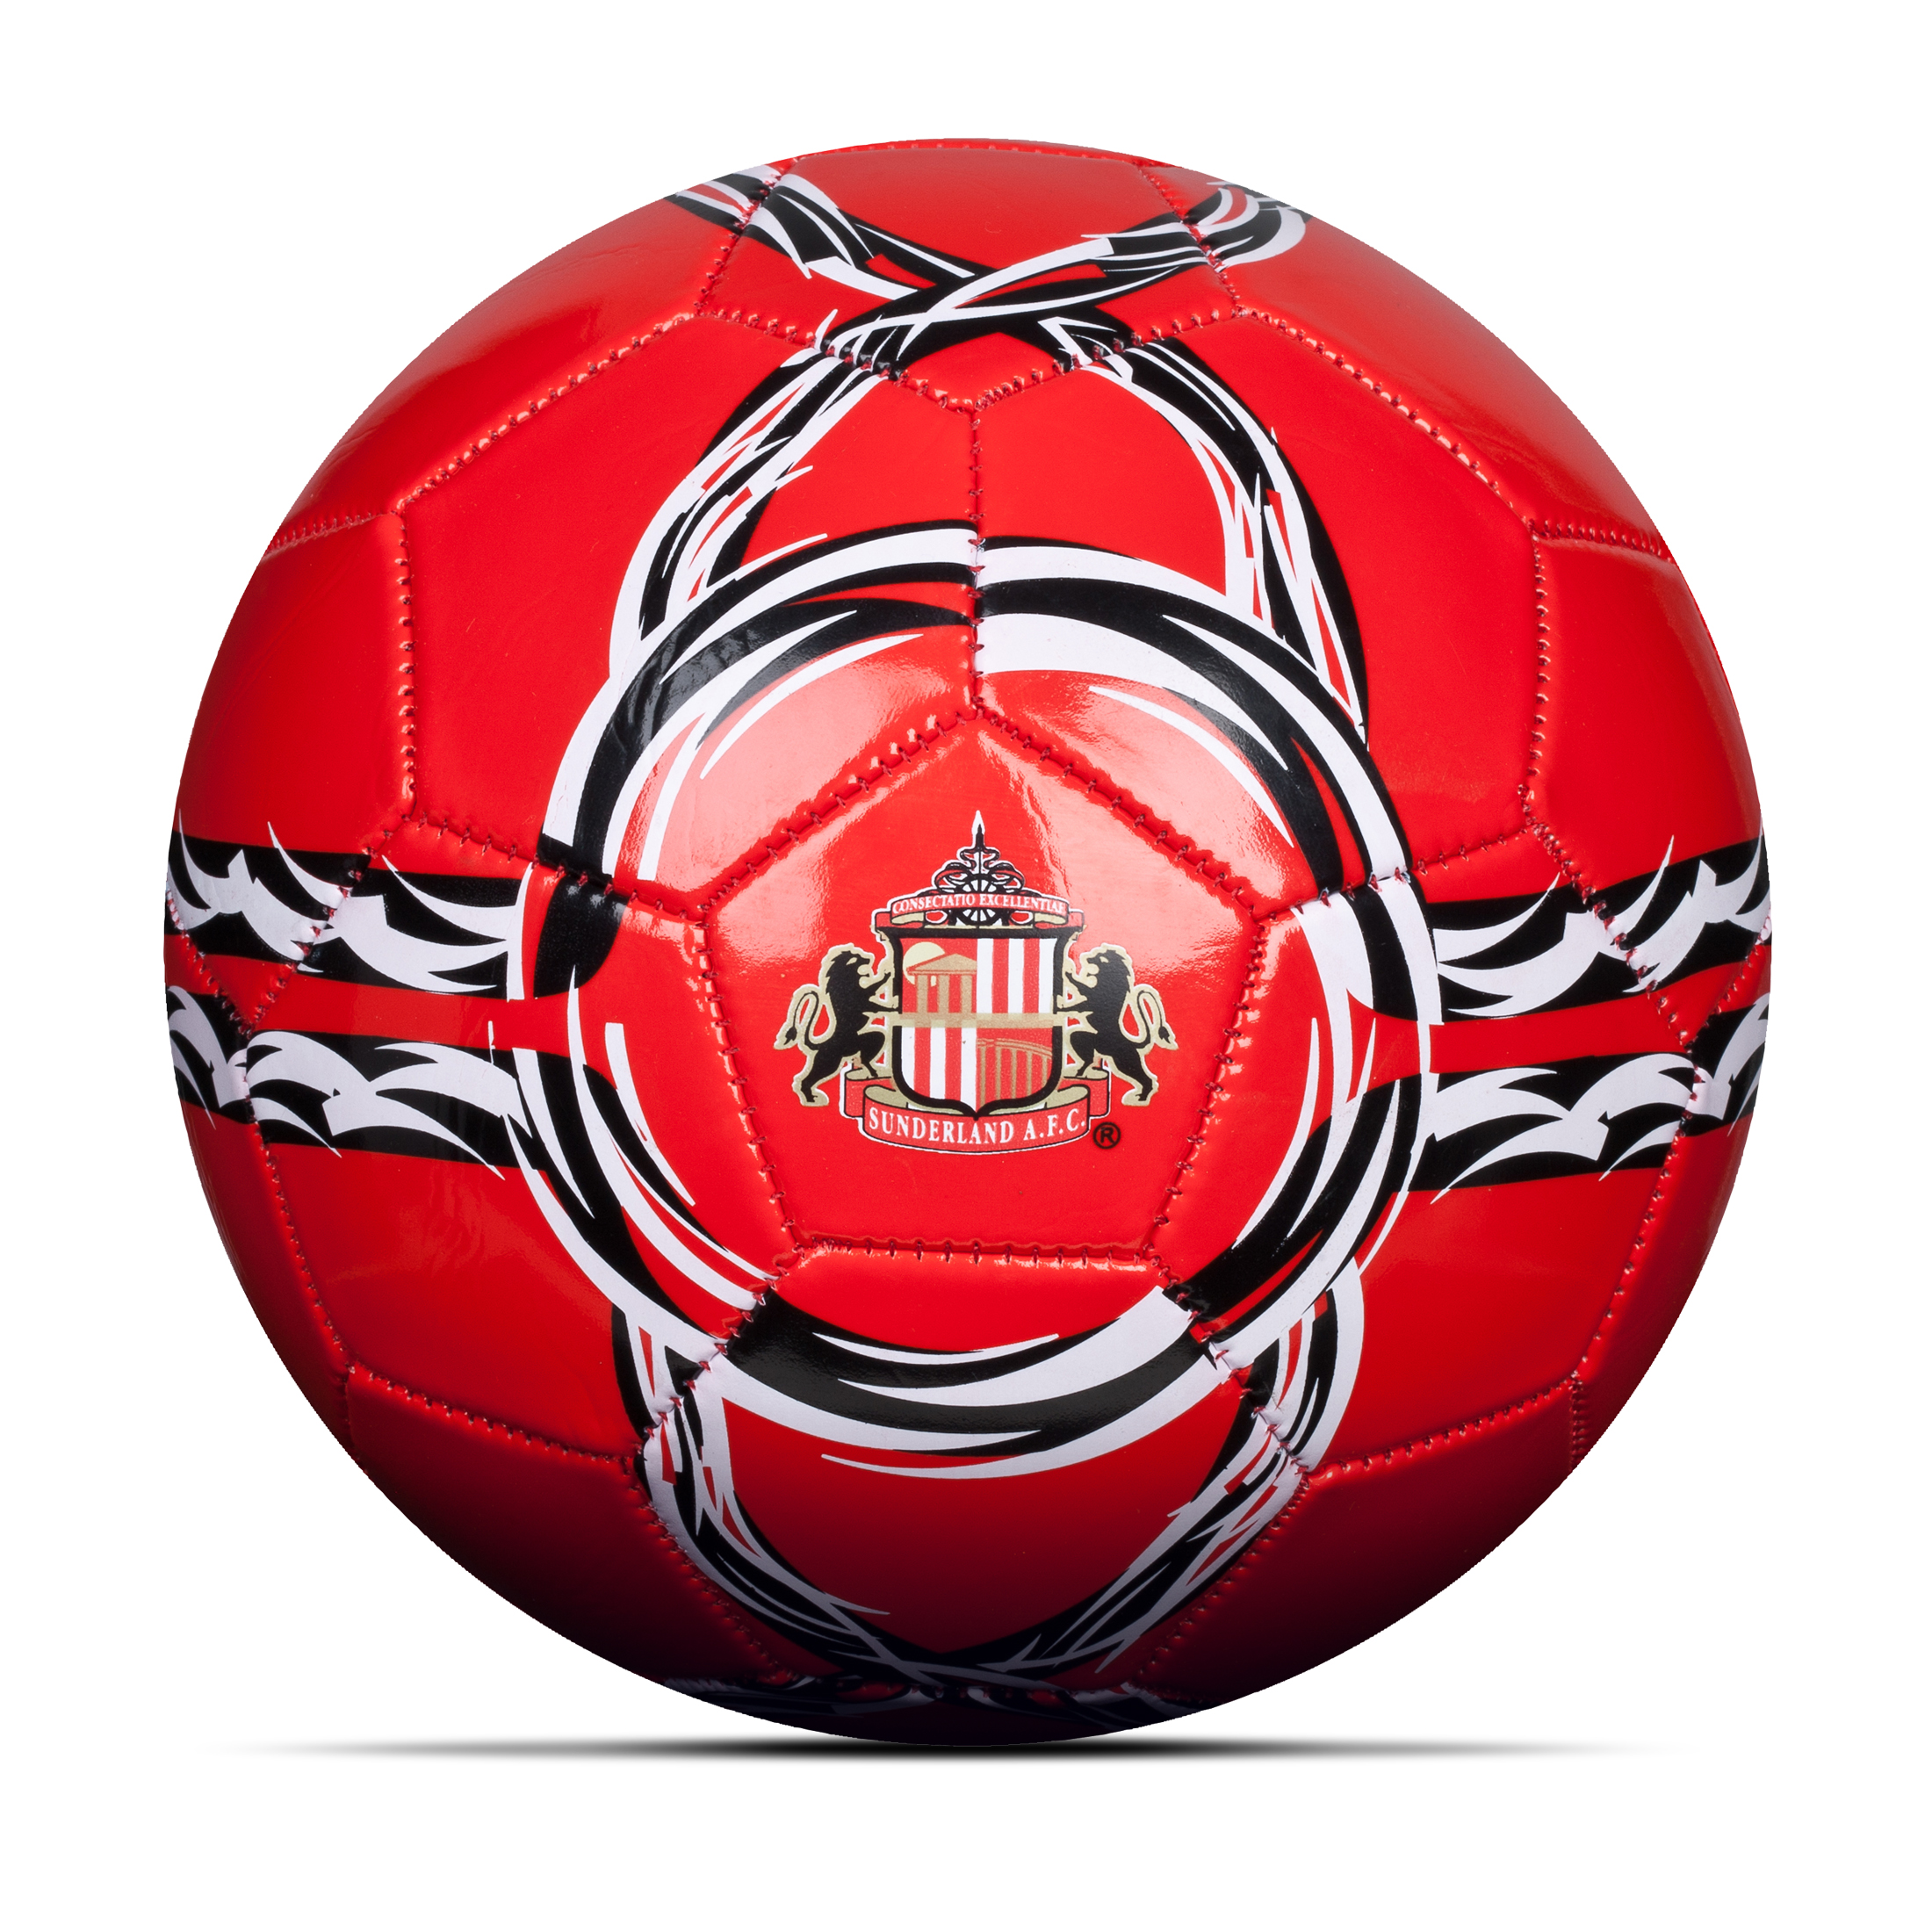 Sunderland Core Football - Size 5 - Red/White